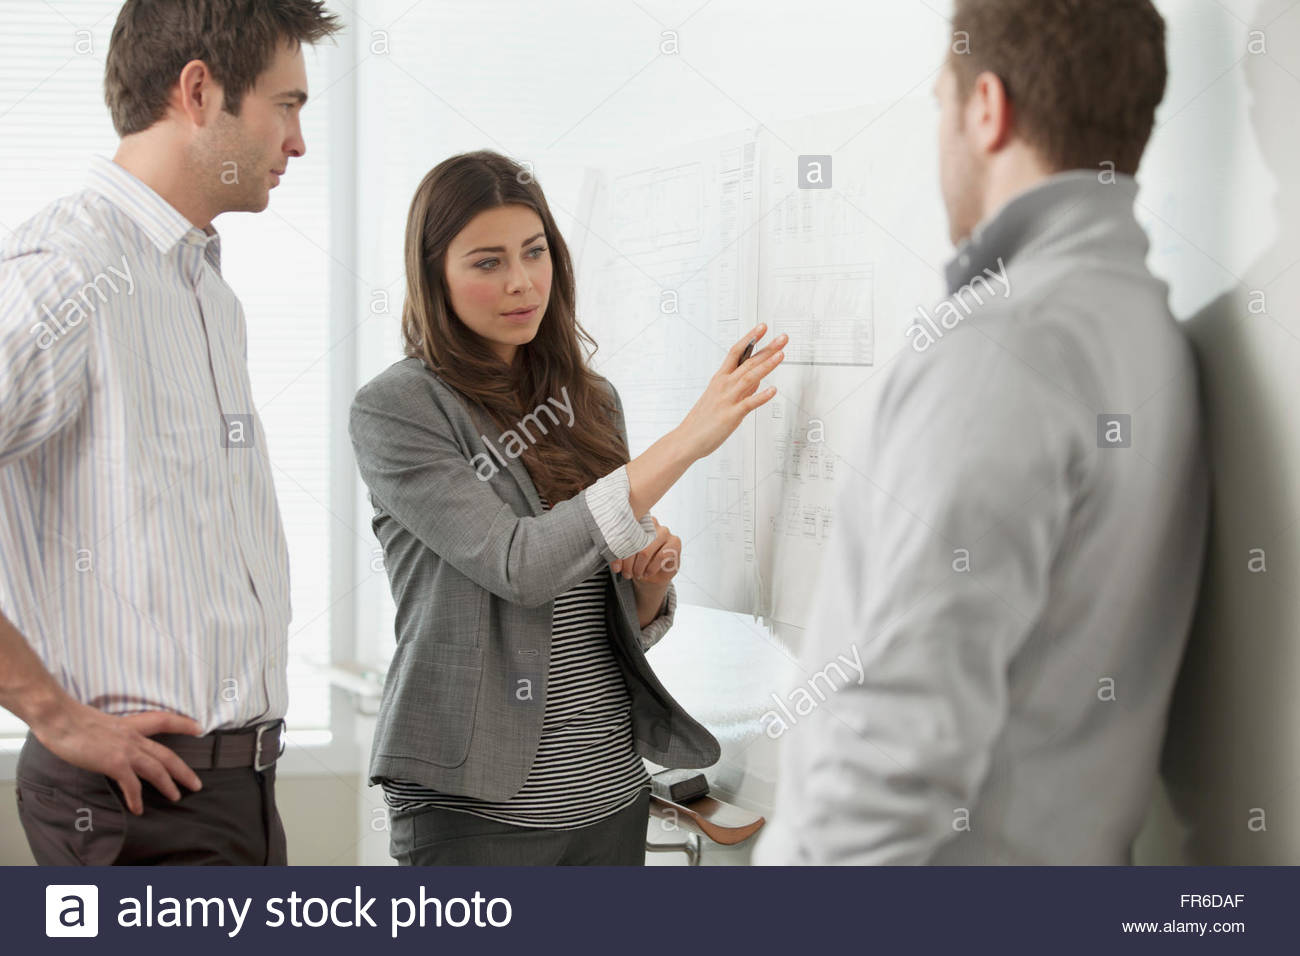 coworkers discussing at whiteboard - Stock Image